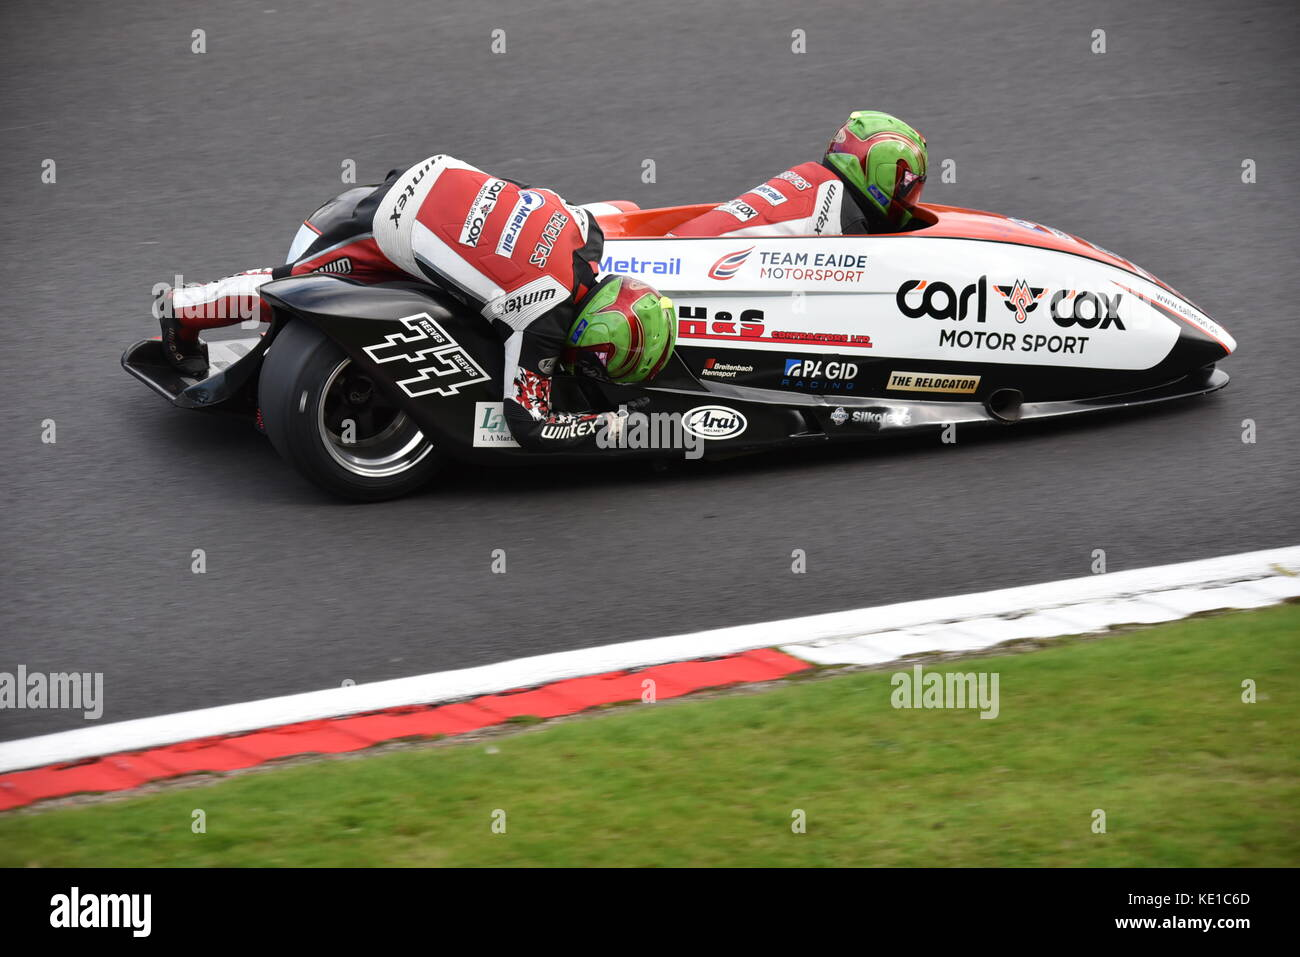 British Sidecar championship at BSB meeting - Stock Image